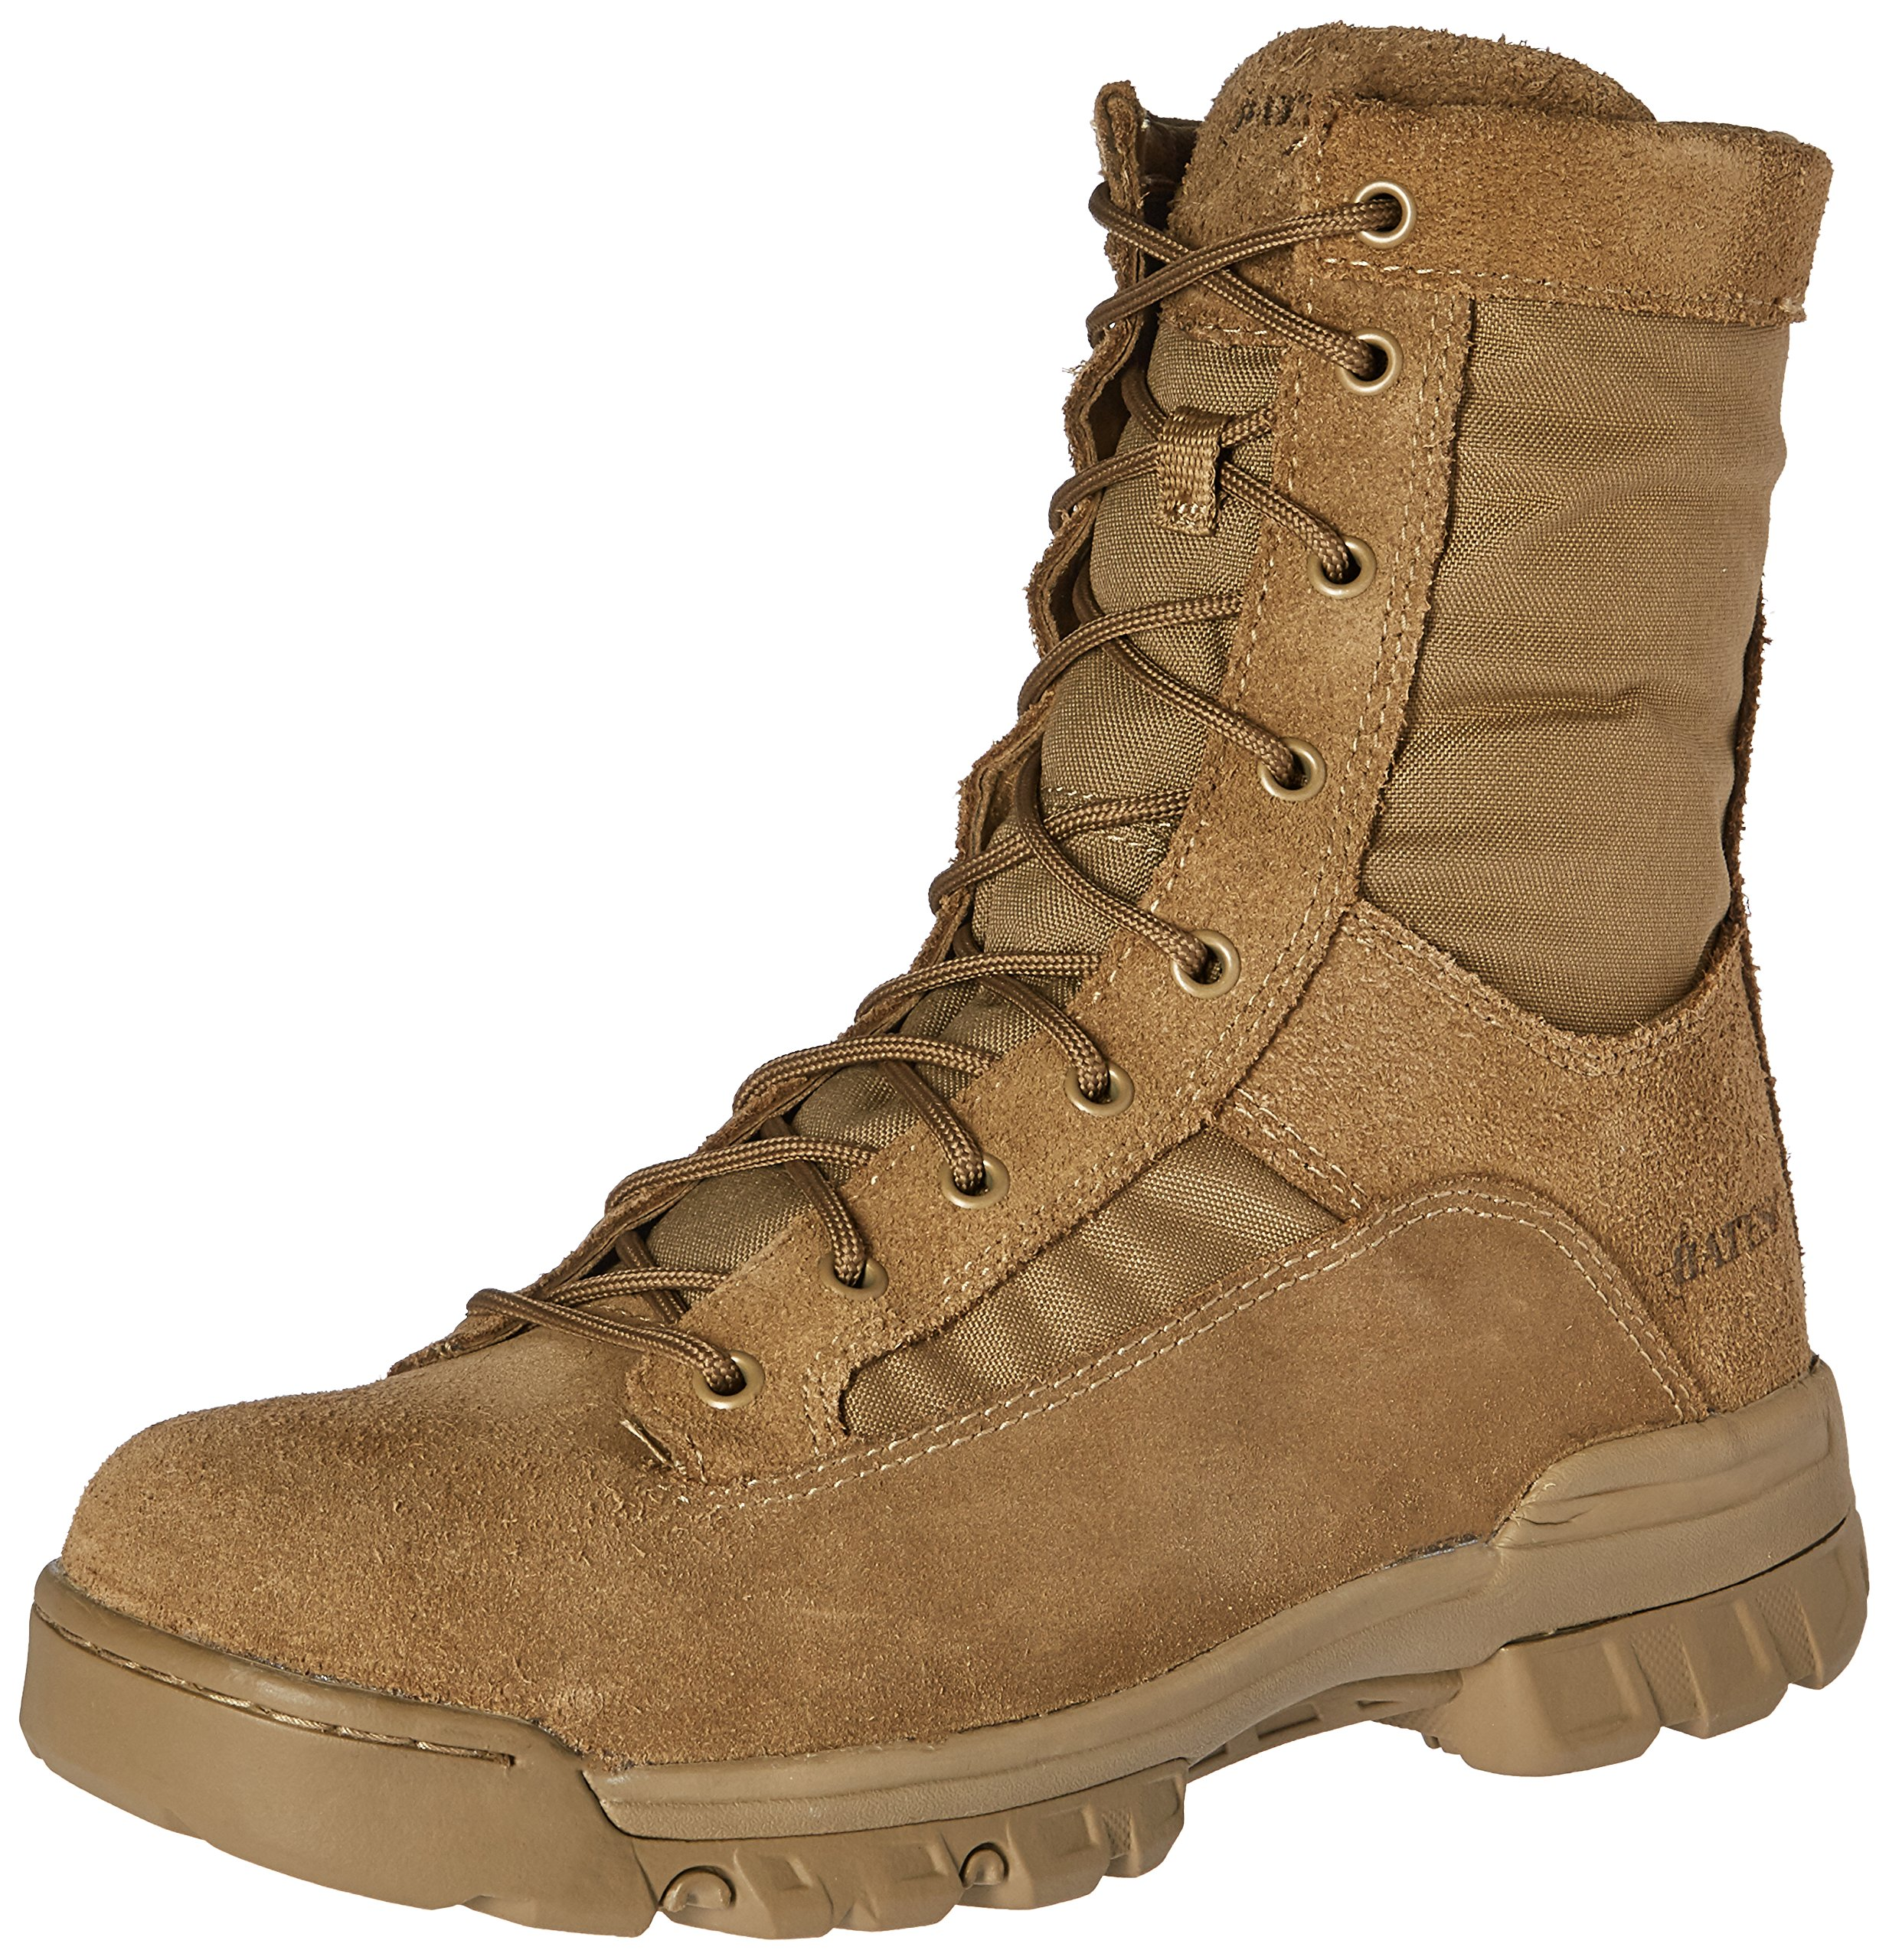 Bates Men's Ranger Ii Hot Weather Military & Tactical Boot